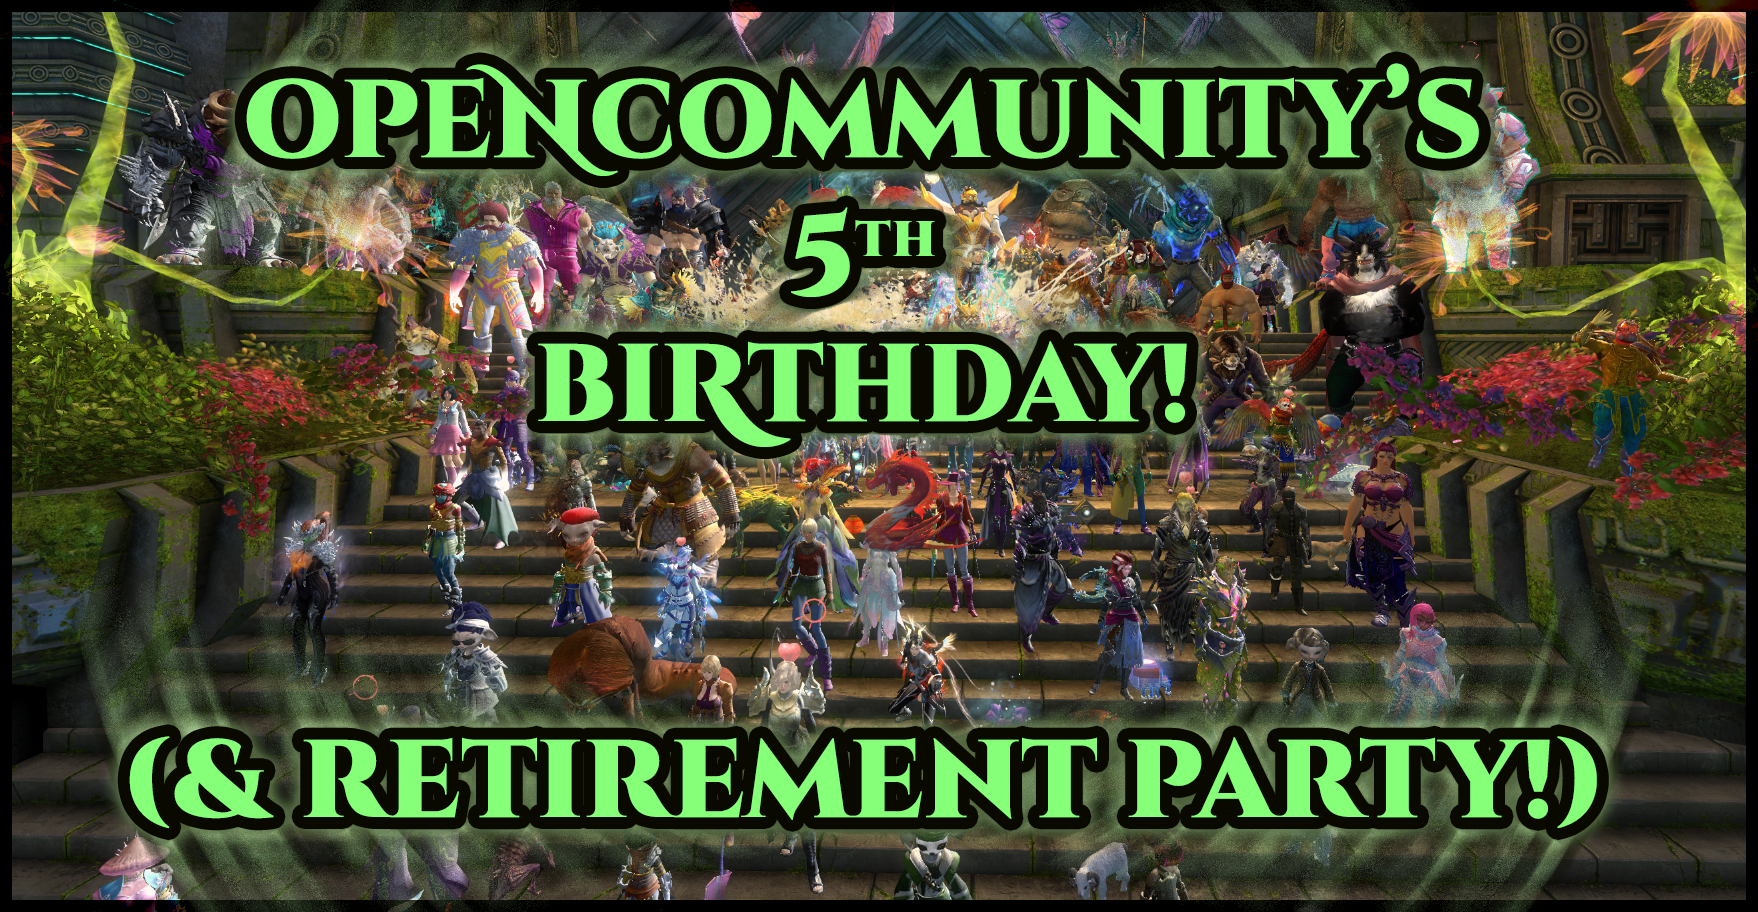 Happy 5th Birthday, OC - Retirement Party on May 23rd!